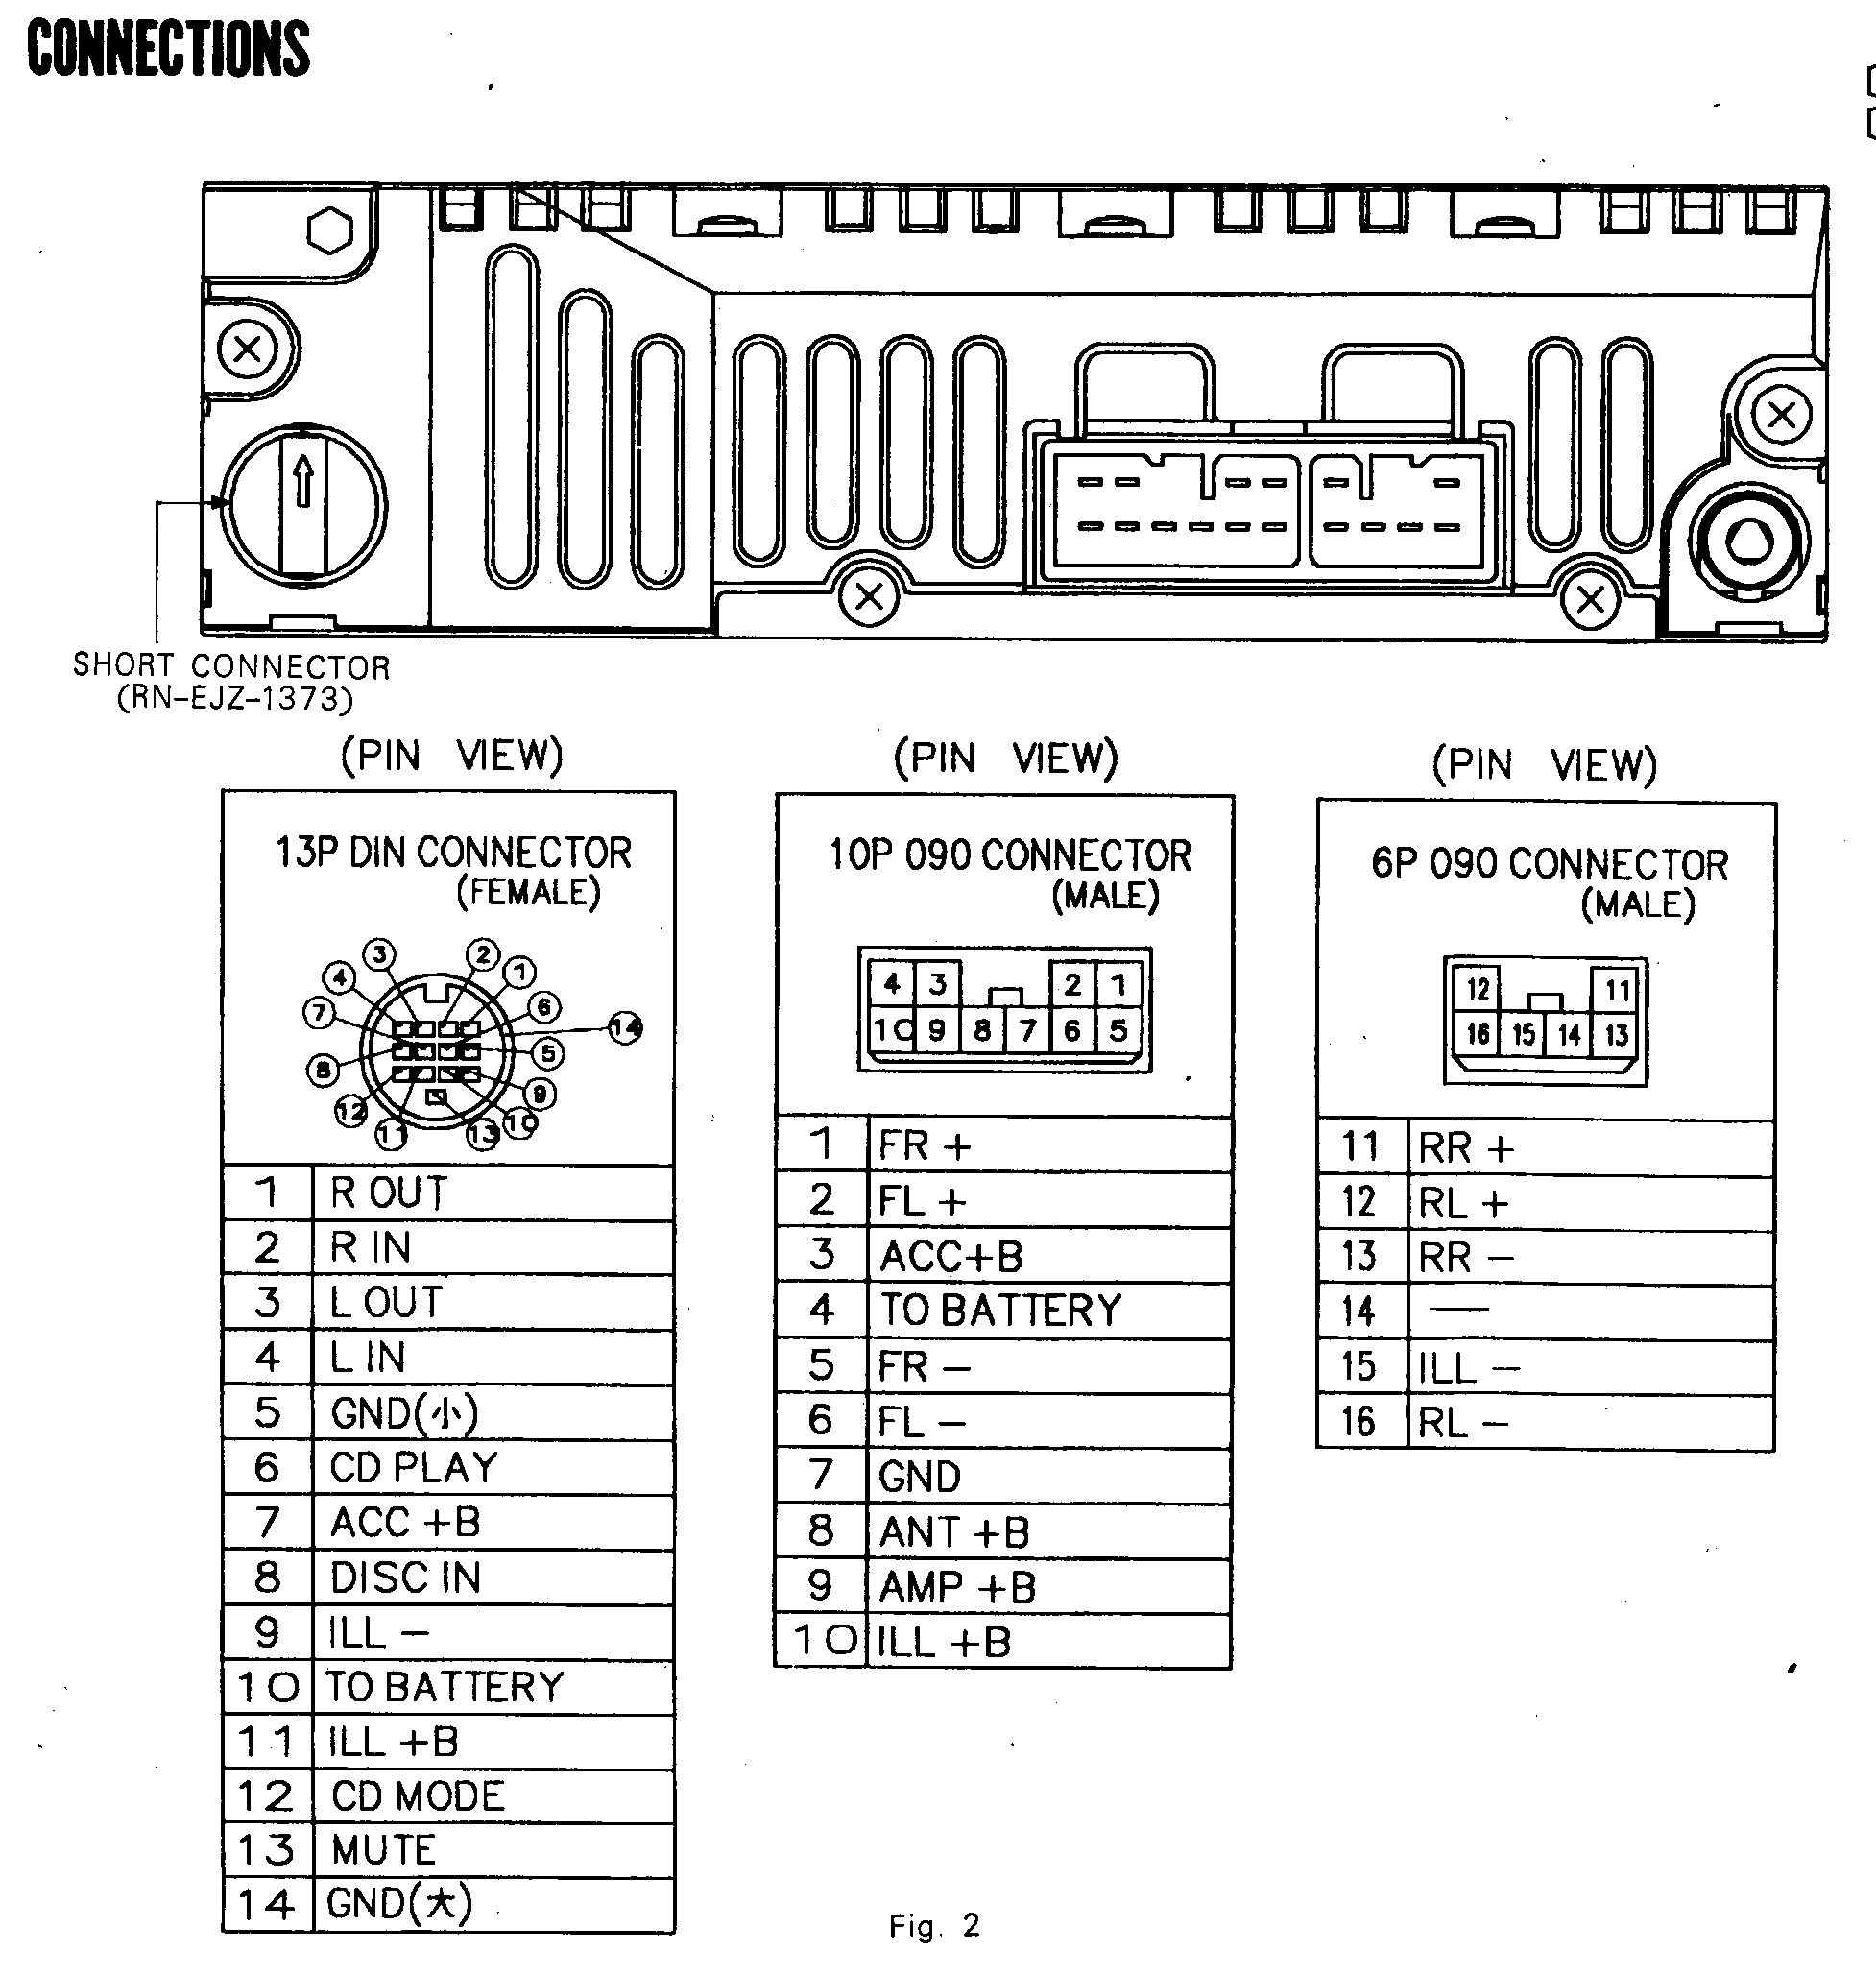 general motors stereo wiring diagram 8 1 classroomleader co \u2022general motors trailer wiring color code online wiring diagram rh i successpath co boat stereo wiring